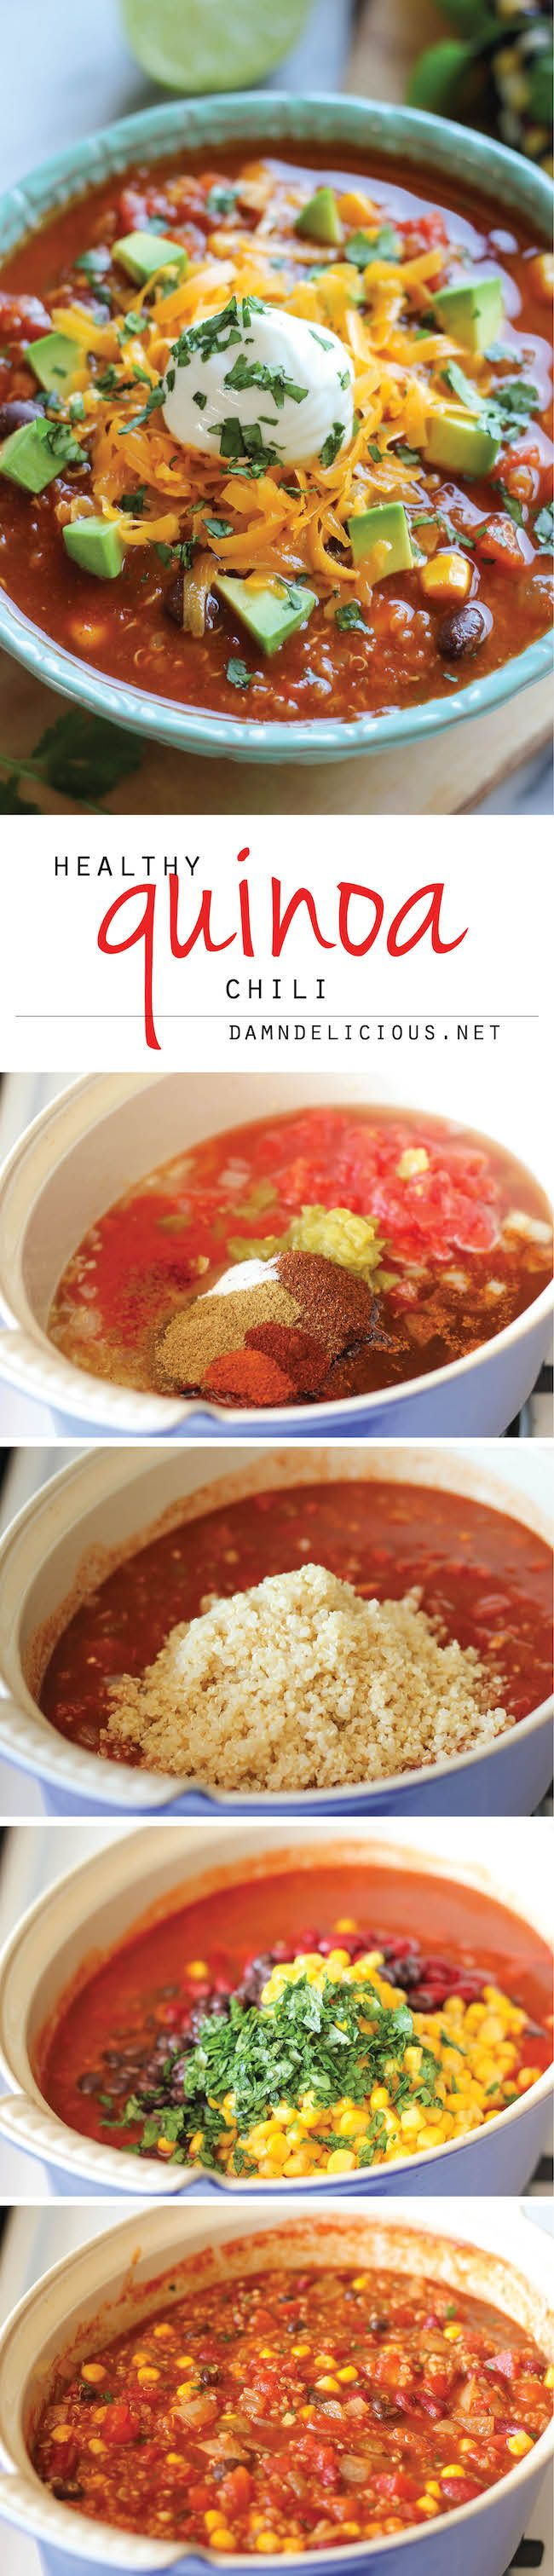 Quinoa Chili - This vegetarian, protein-packed chili is the perfect ...